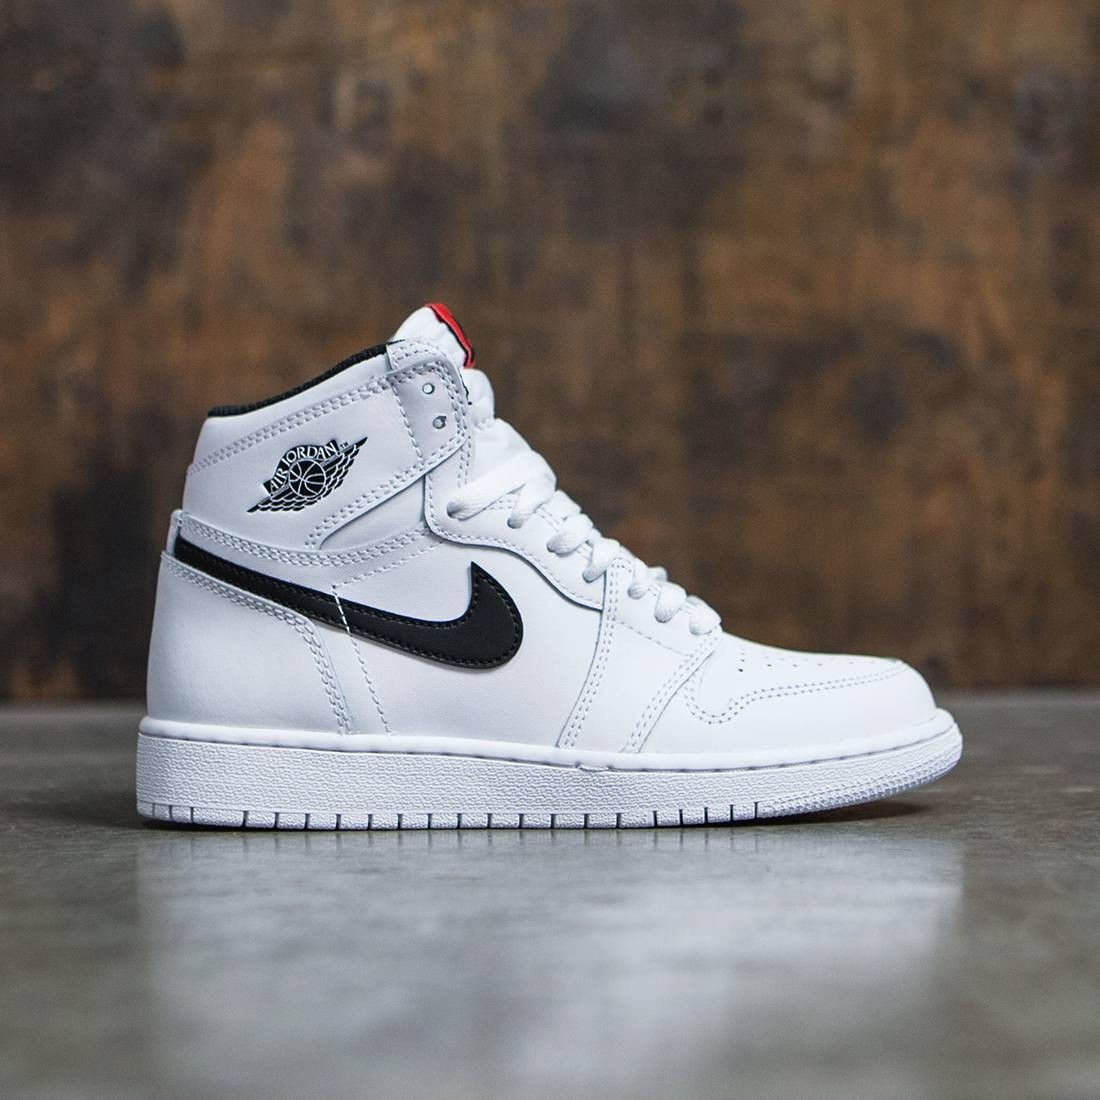 aa297c975d22 Jordan Big Kids Air Jordan 1 Retro High OG (GS) (white   black-white-university  red)